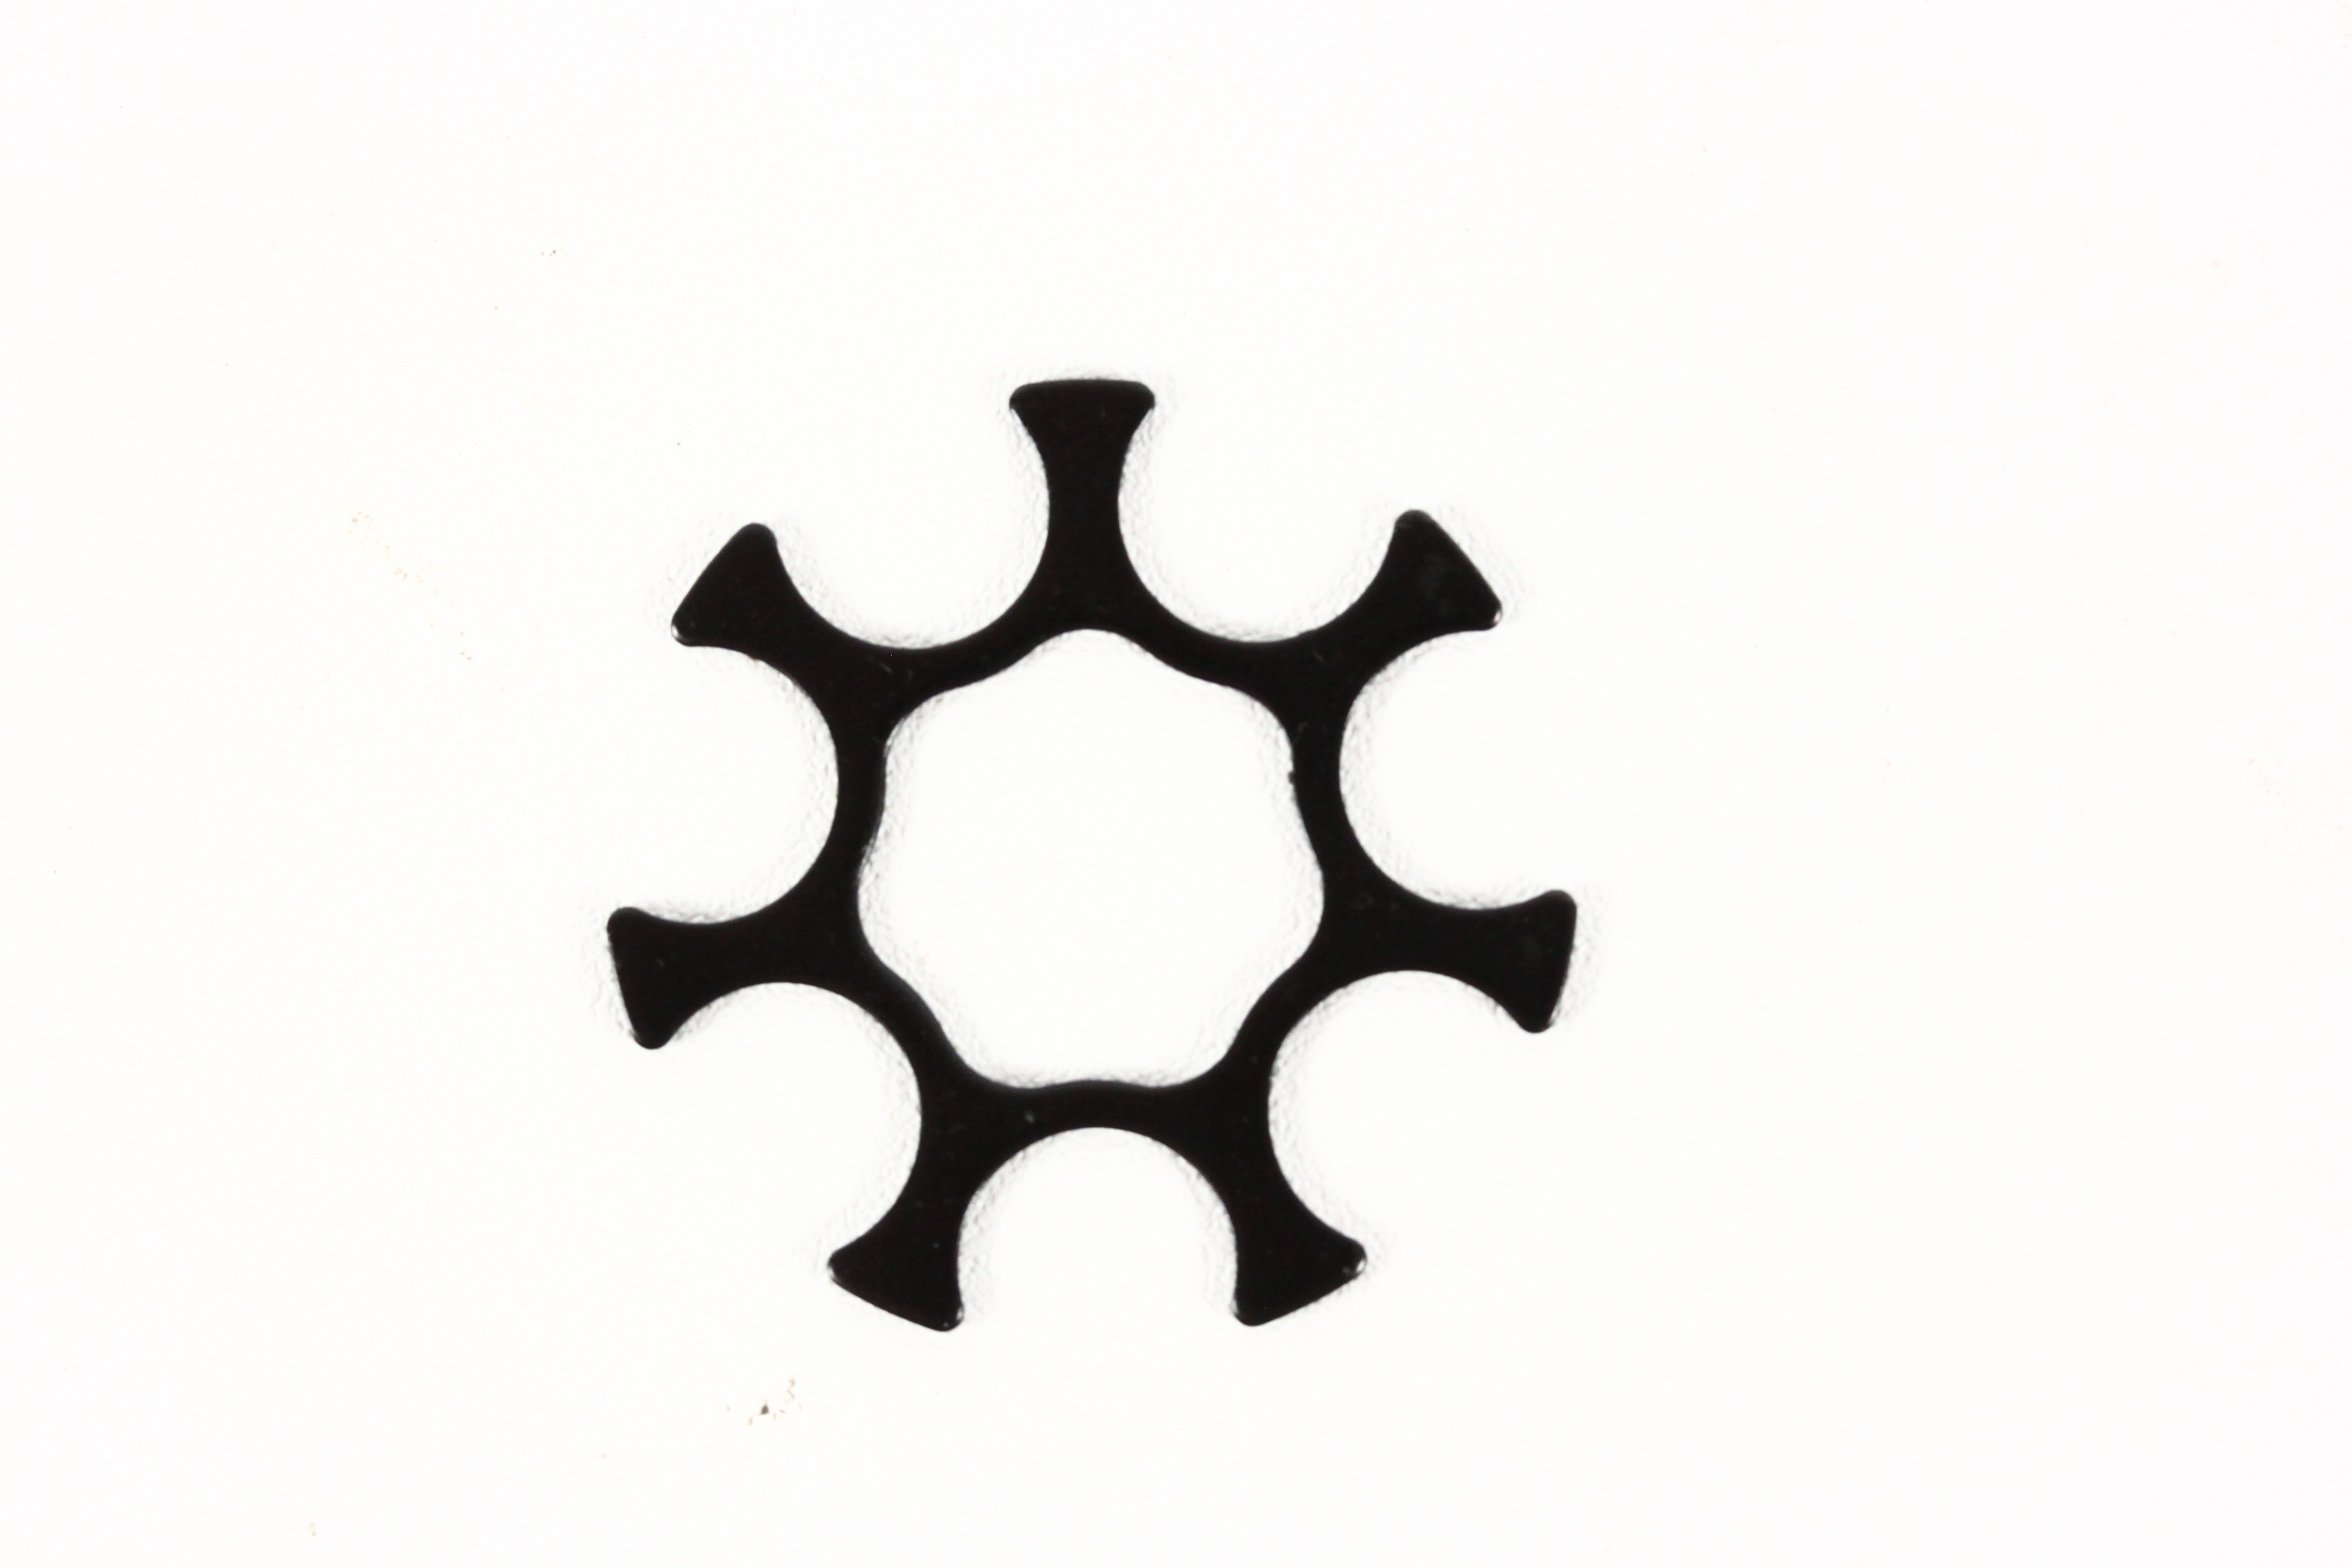 Speed Beez Full Moon Clips Smith & Wesson Model 986 7 shot 9mm (Package of 20)